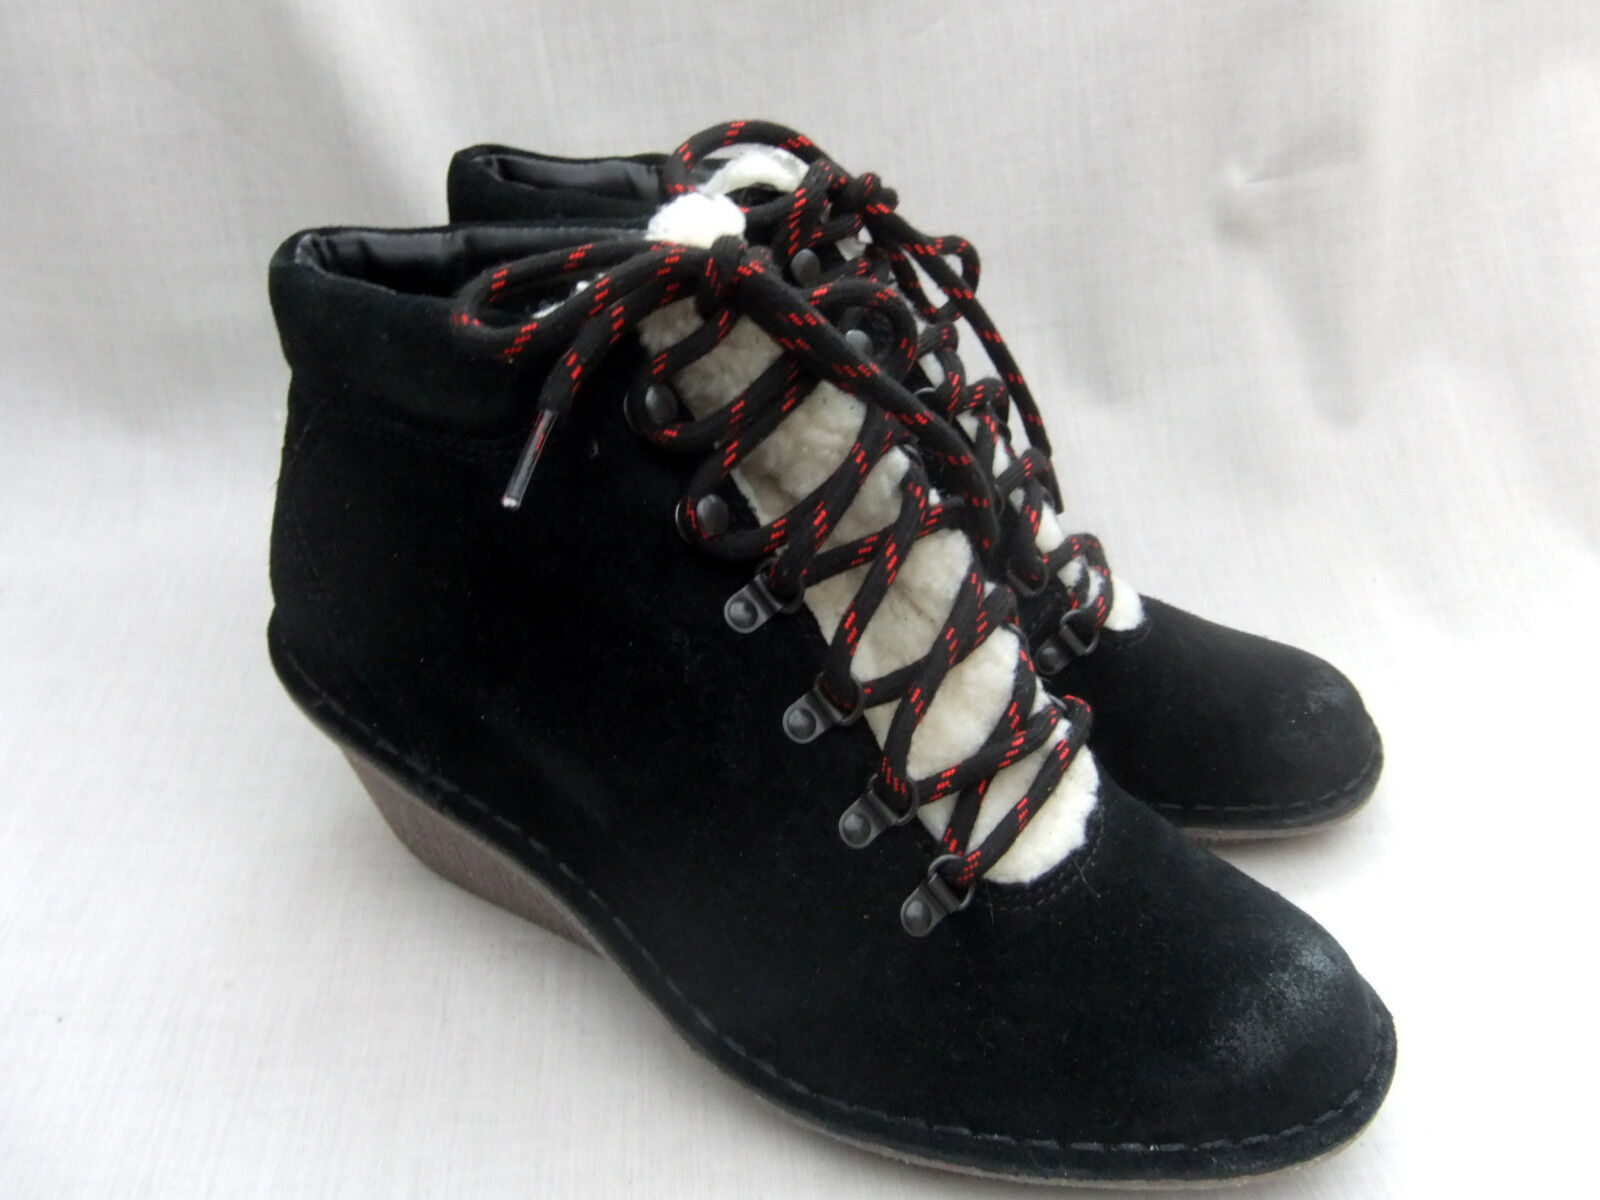 NEW Stiefel CLARKS MARSDEN GRACE Damenschuhe BLACK SUEDE WEDGE ANKLE Stiefel NEW SIZE 7 / 41 2e1a9e